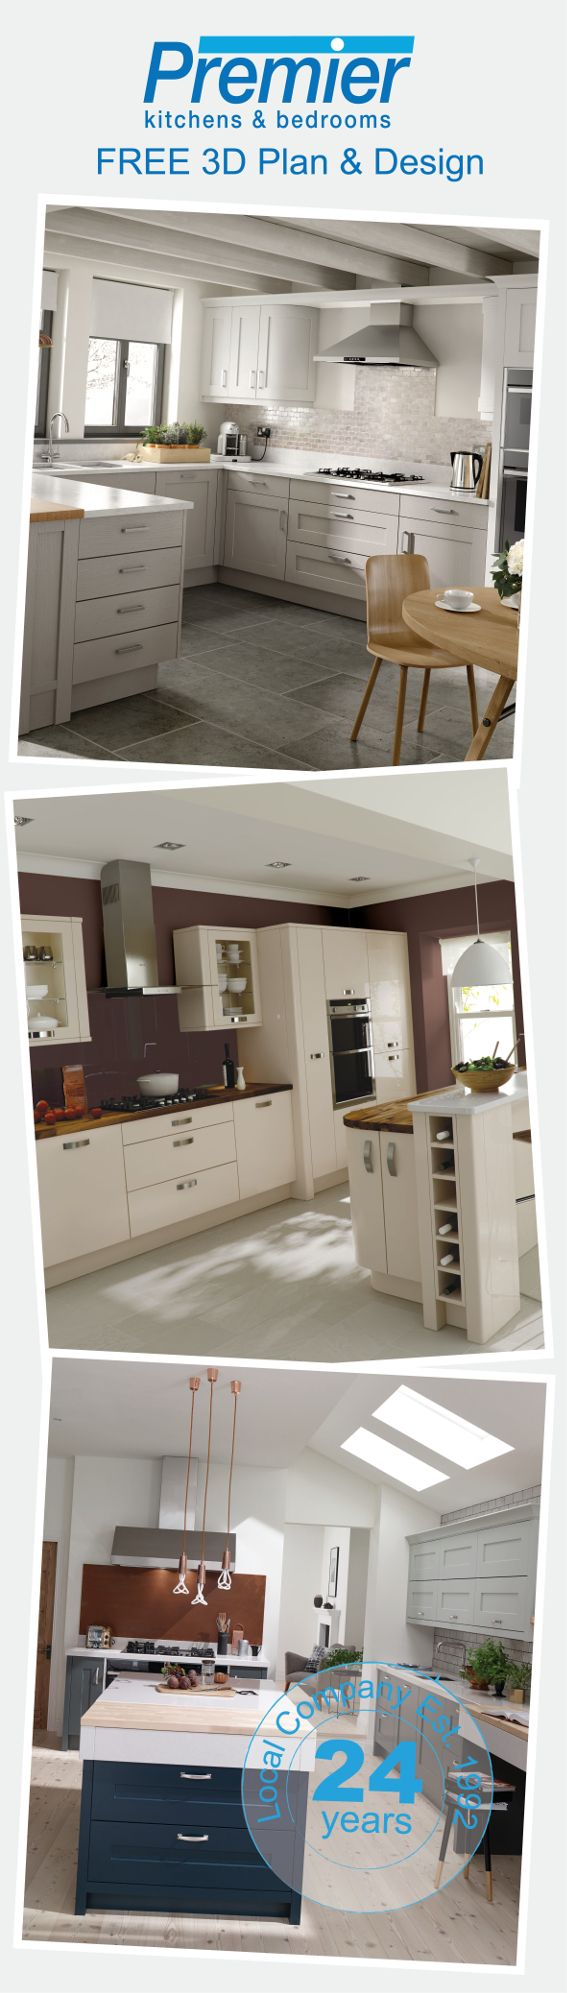 Why not start 2017 with a brand new kitchen? Whether you are looking for a classic or a contemporary kitchen, we have a variety of different ranges to suit every home. So hurry and book your FREE 3D plan and design appointment today and take advantage of our massive January sale!